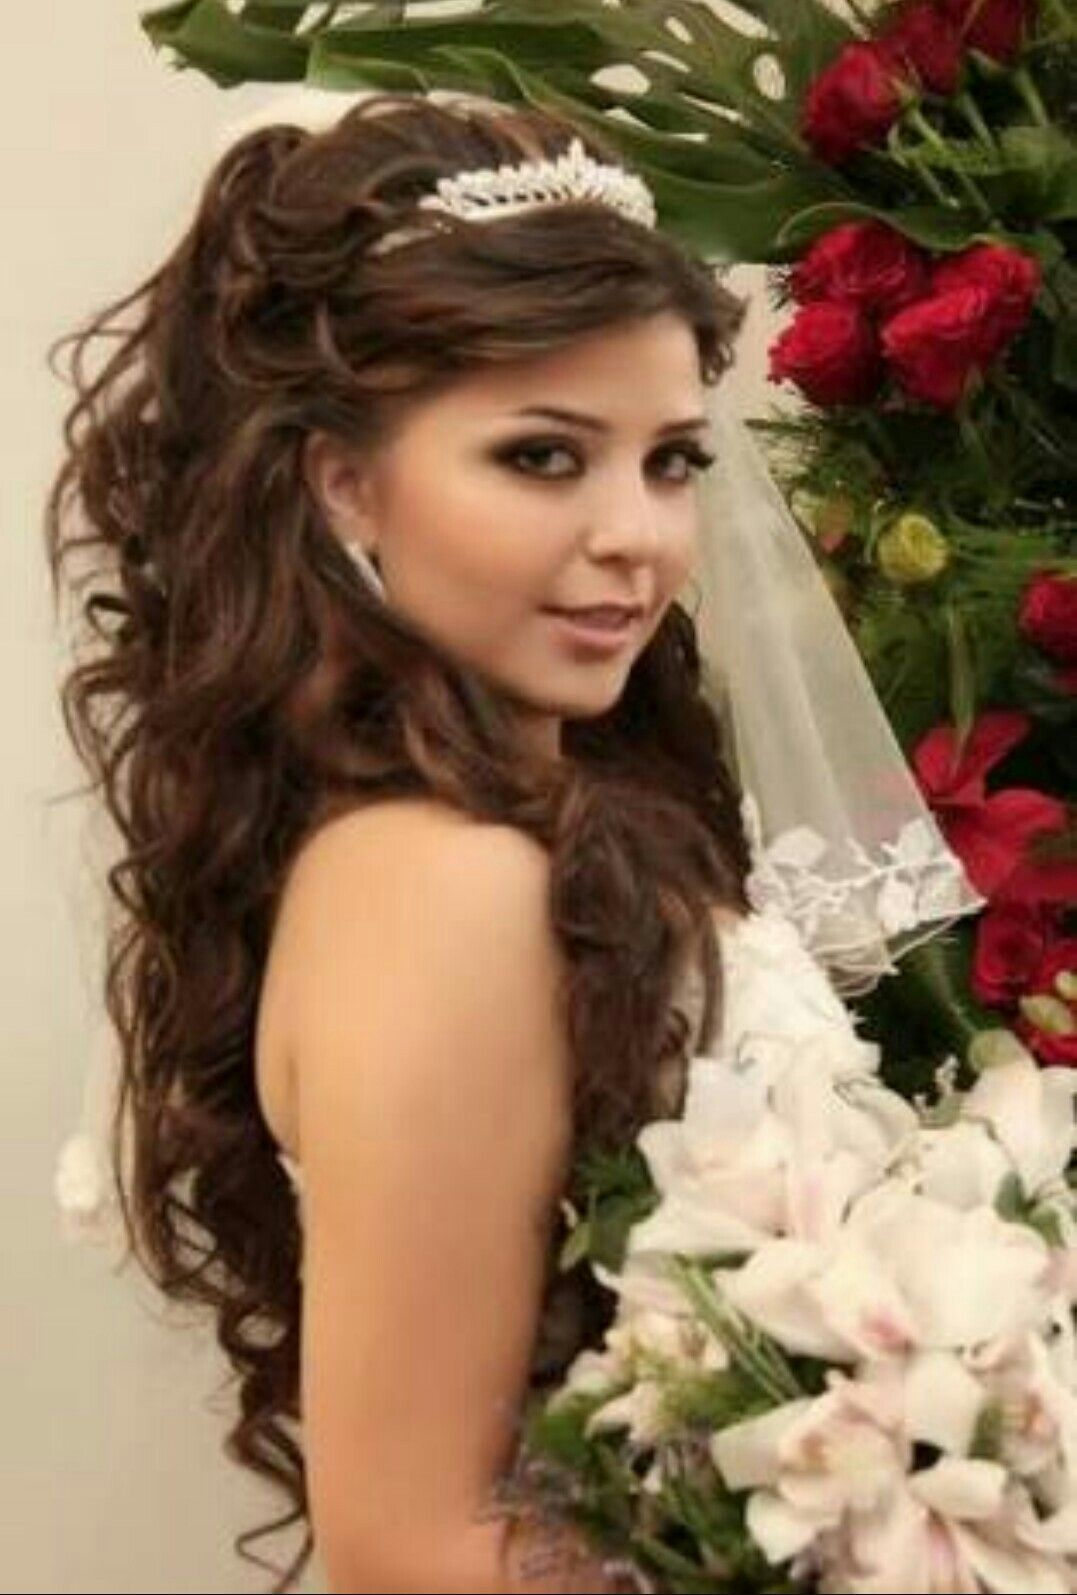 Pin by carlos albor on philippines beauty pinterest quinceanera bangs hairstyles retro everyday hairstyles braidsblack low haircut styles fringe styles to feather hair square braid hair izmirmasajfo